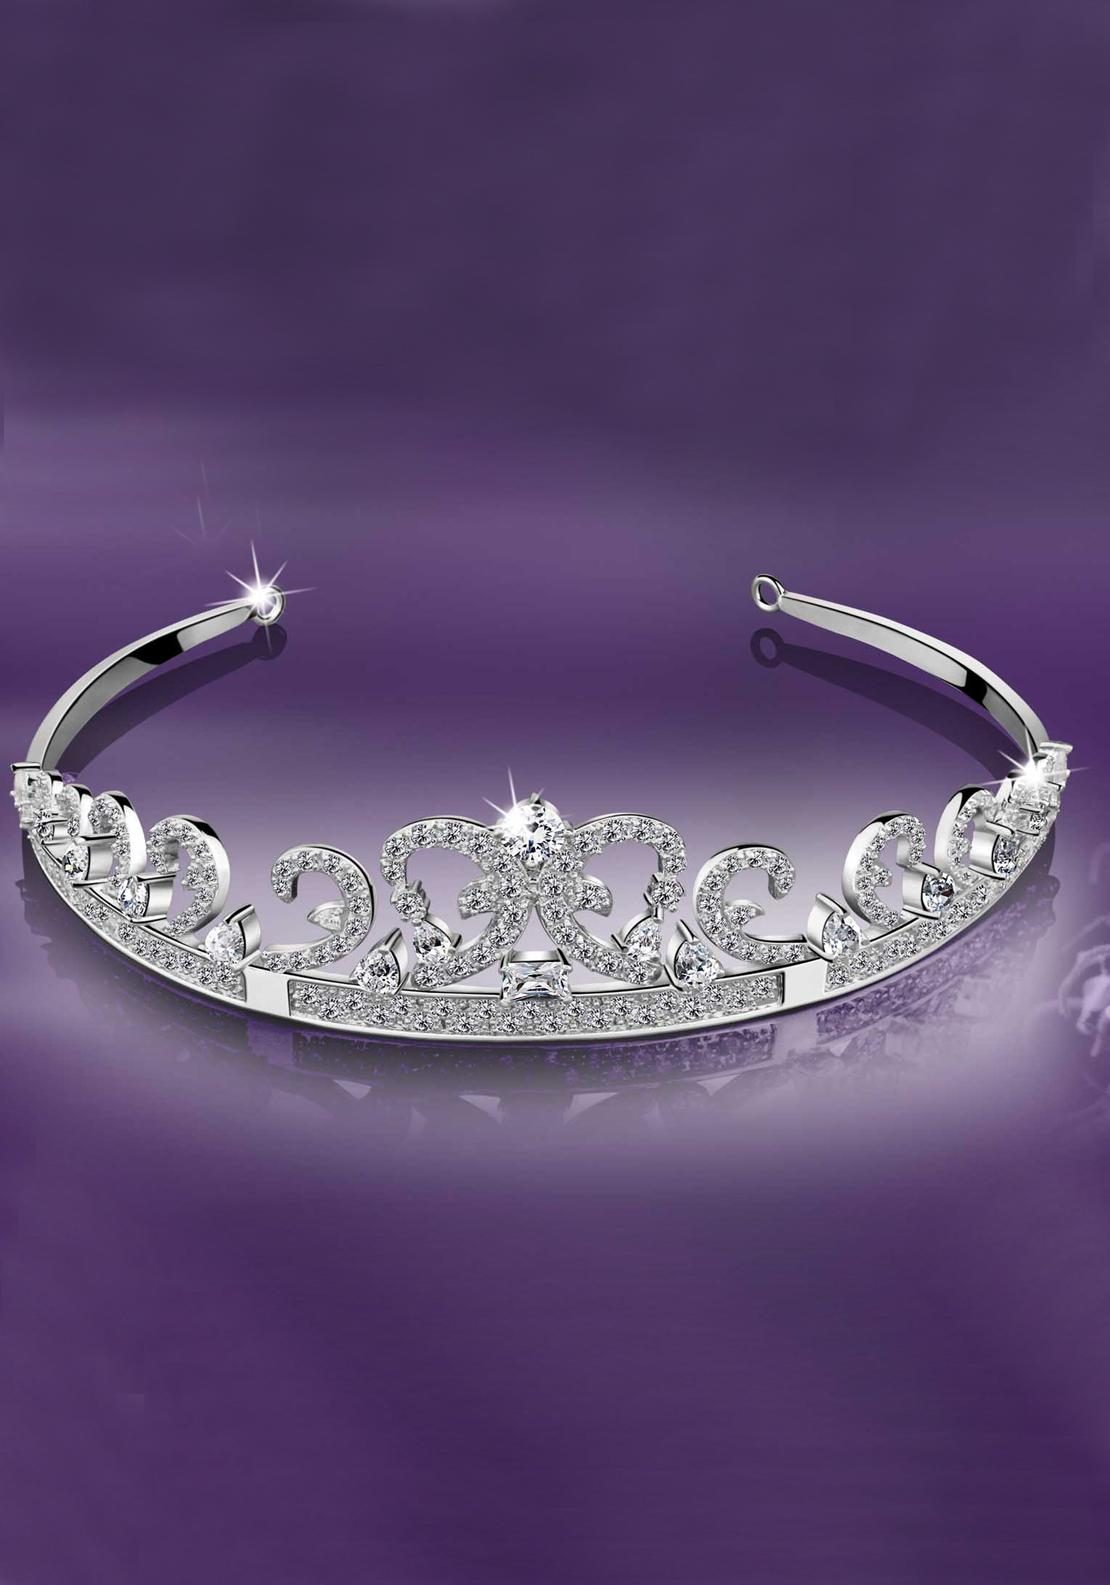 Newbridge Vintage Royal Collection Crowning Glory Royal Tiara